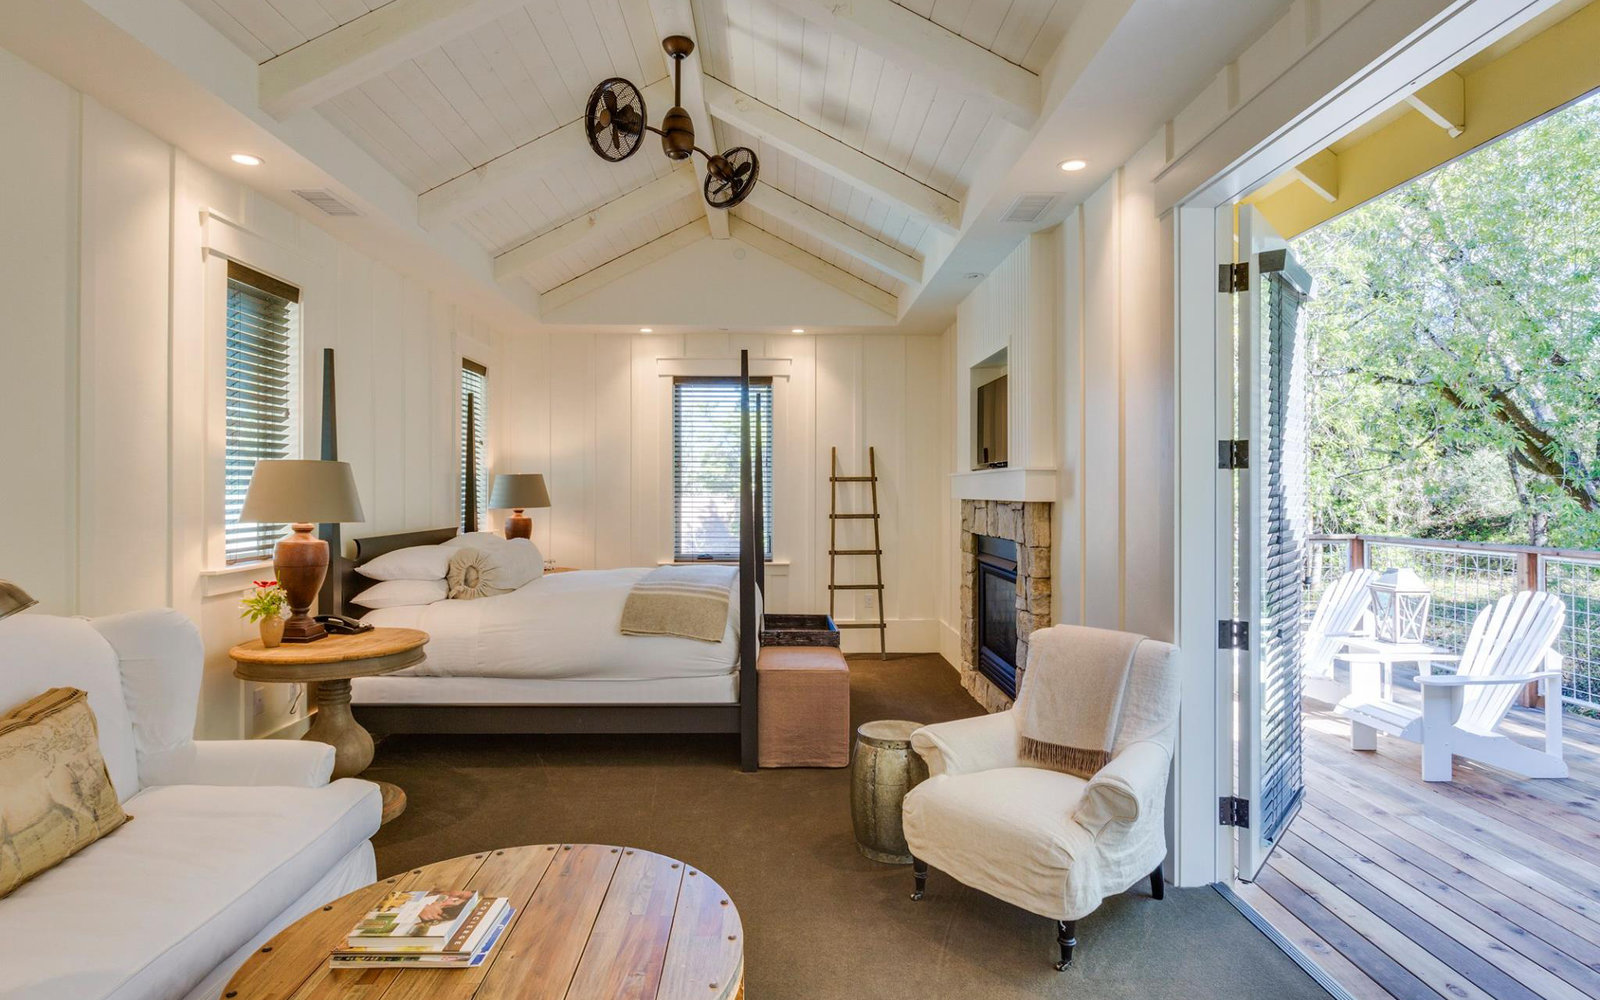 Farmhouse Inn, Forestville, California